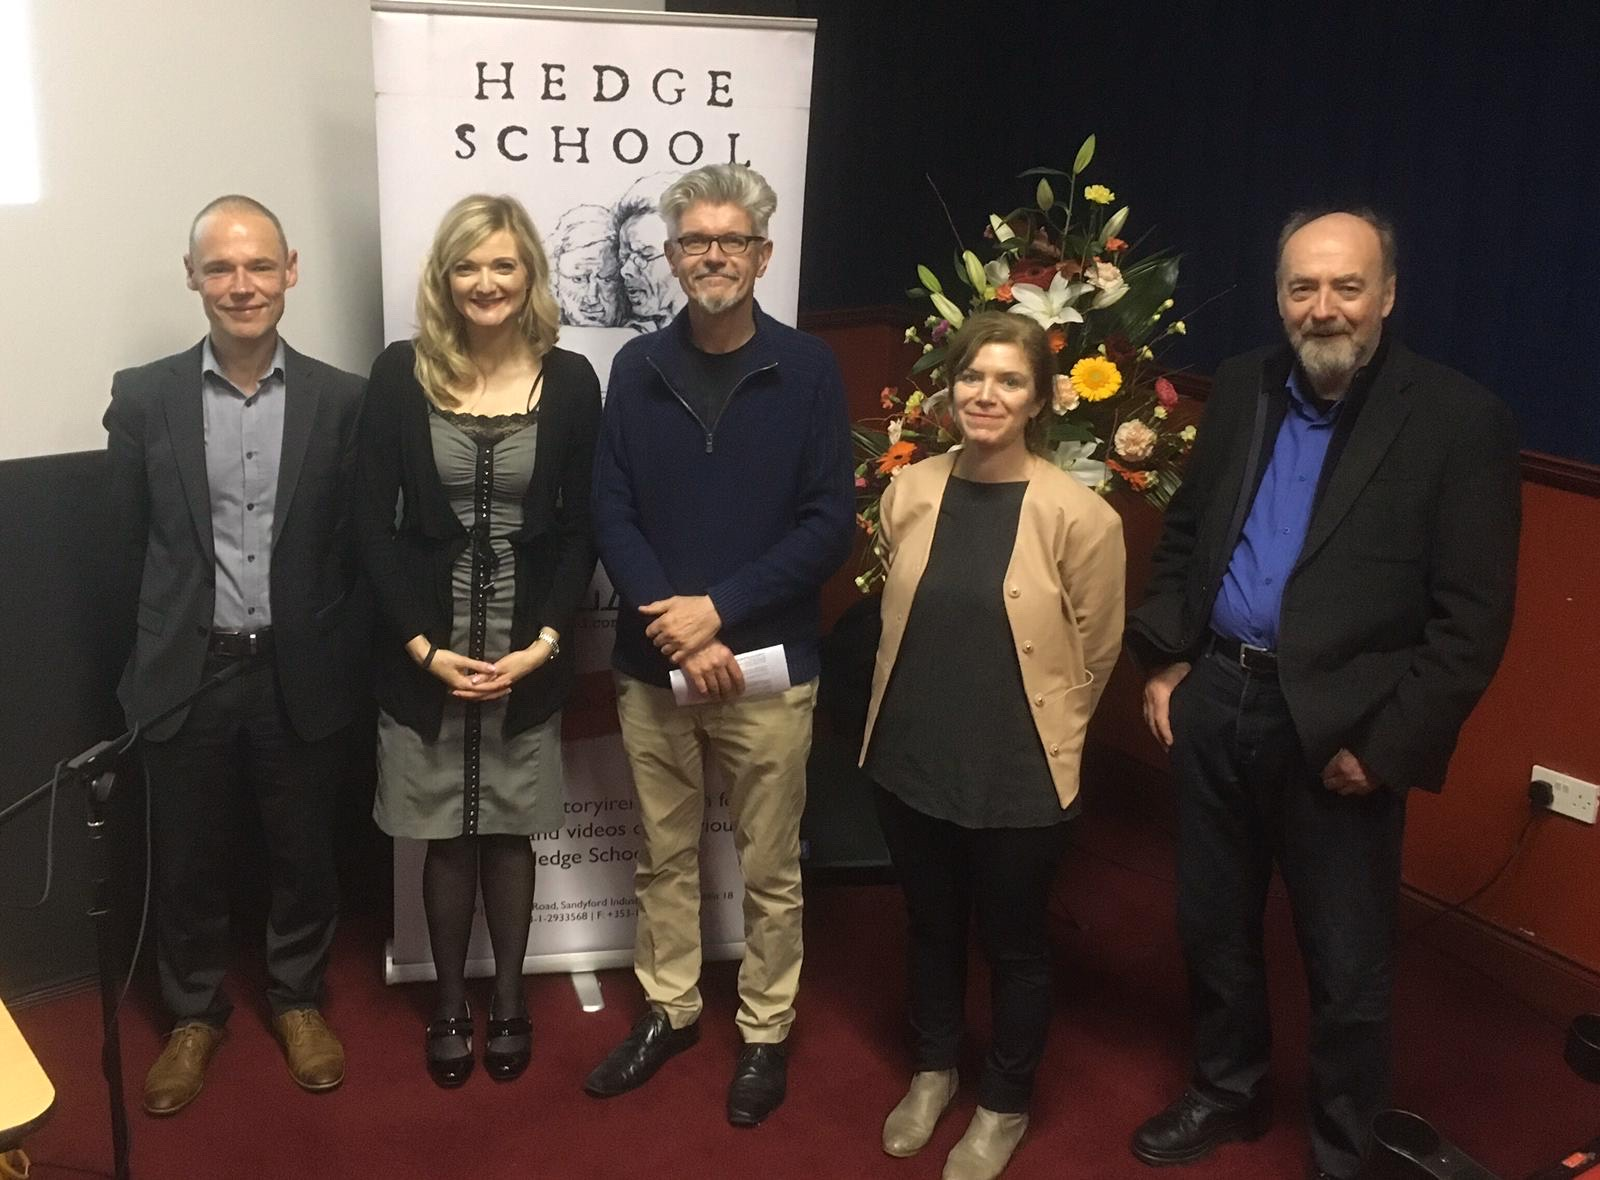 History Ireland Hedge Schools. 'Mobilise the poets' - art & culture in the Irish Revolution